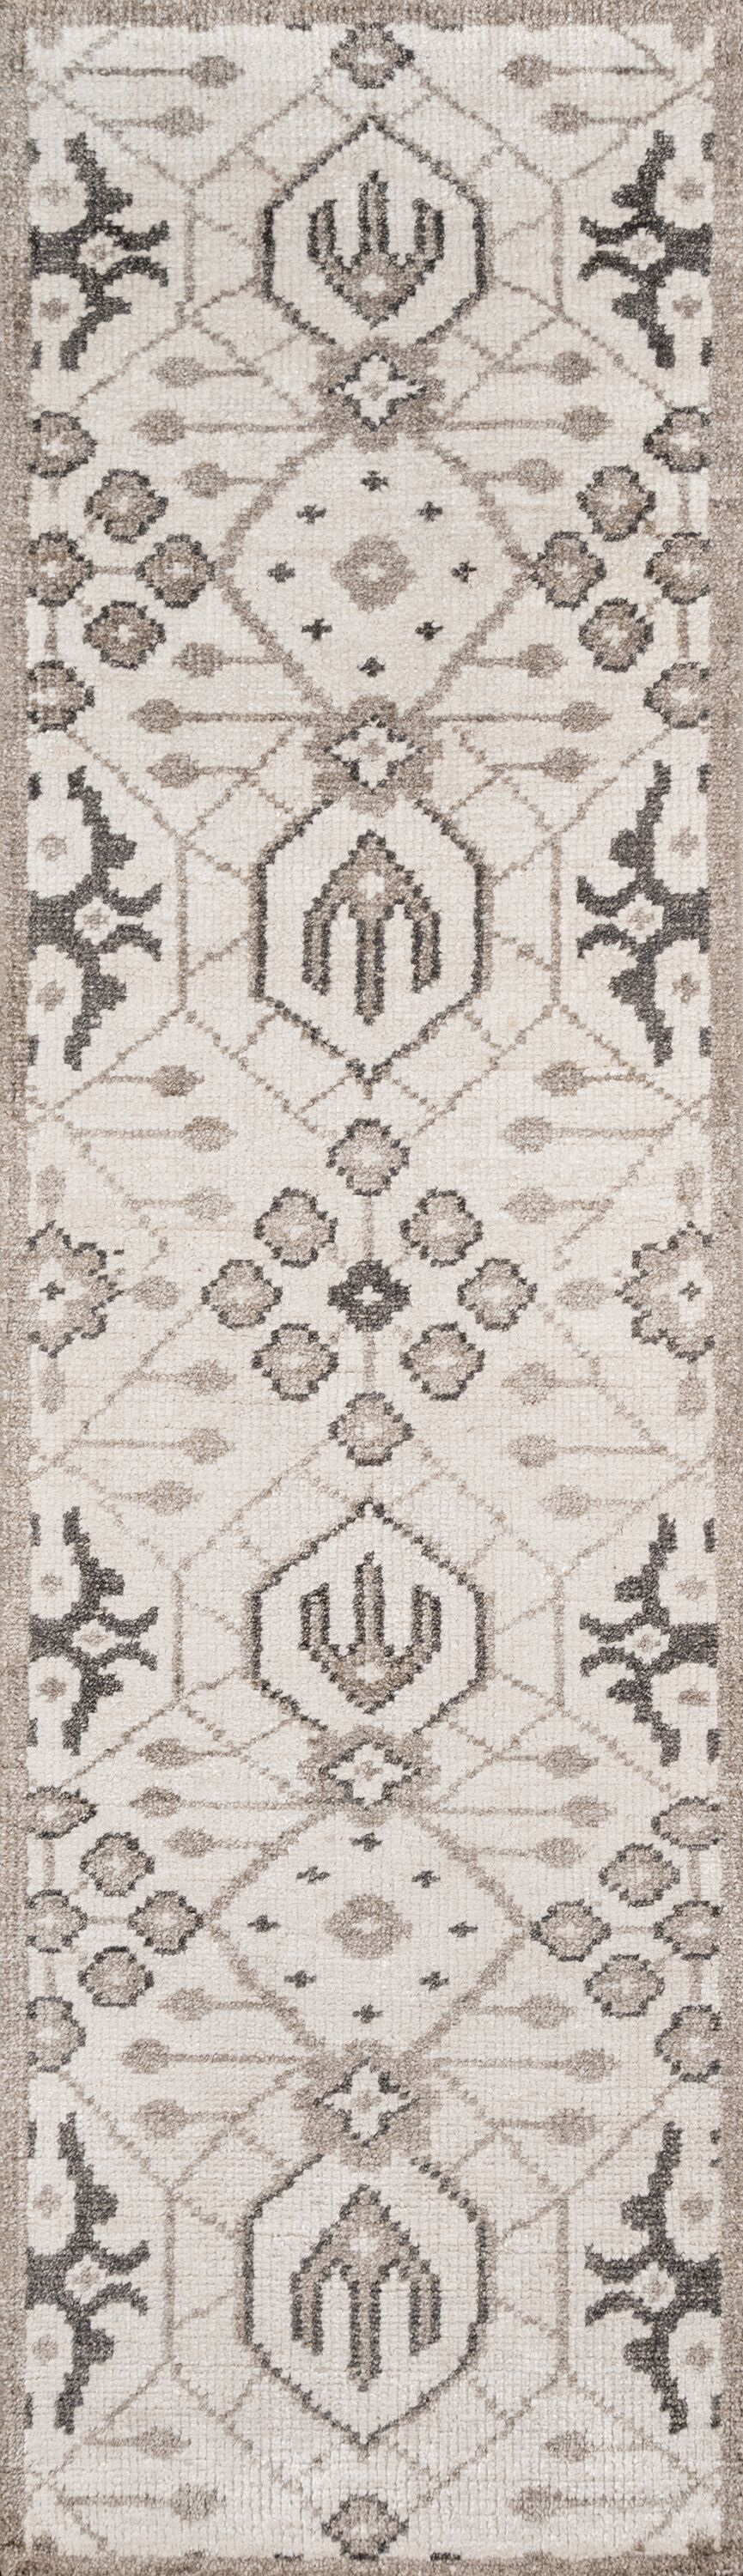 Zoey Hand-Knotted Gray Area Rug Rug Size: Runner 2'3